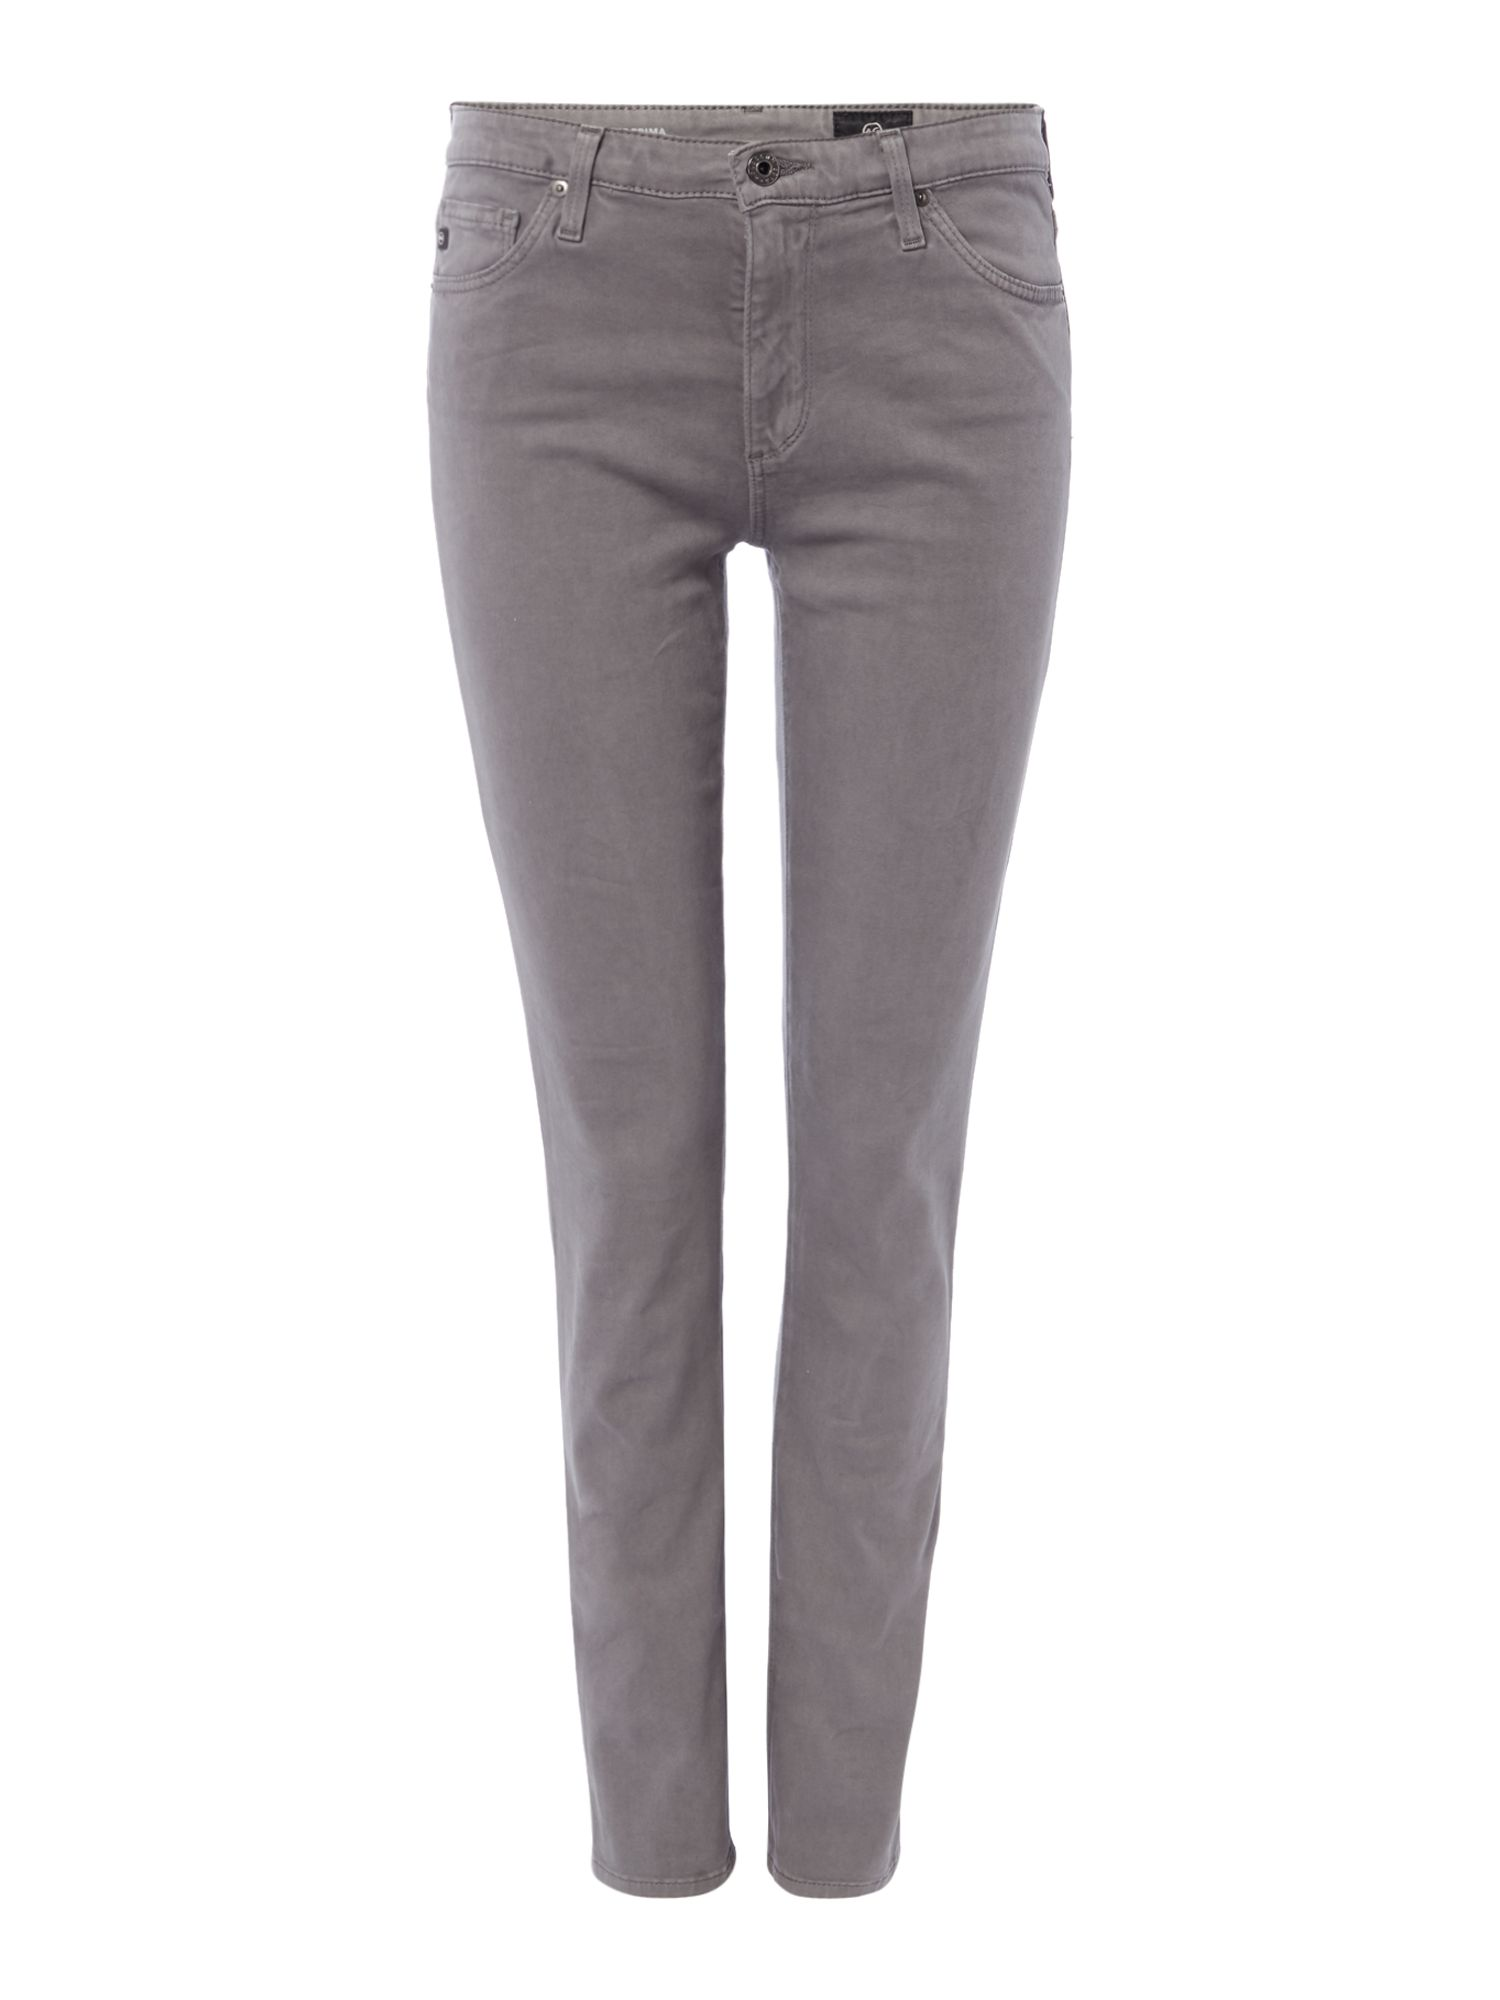 AG Jeans Prima Jeans in Field Stone, Grey